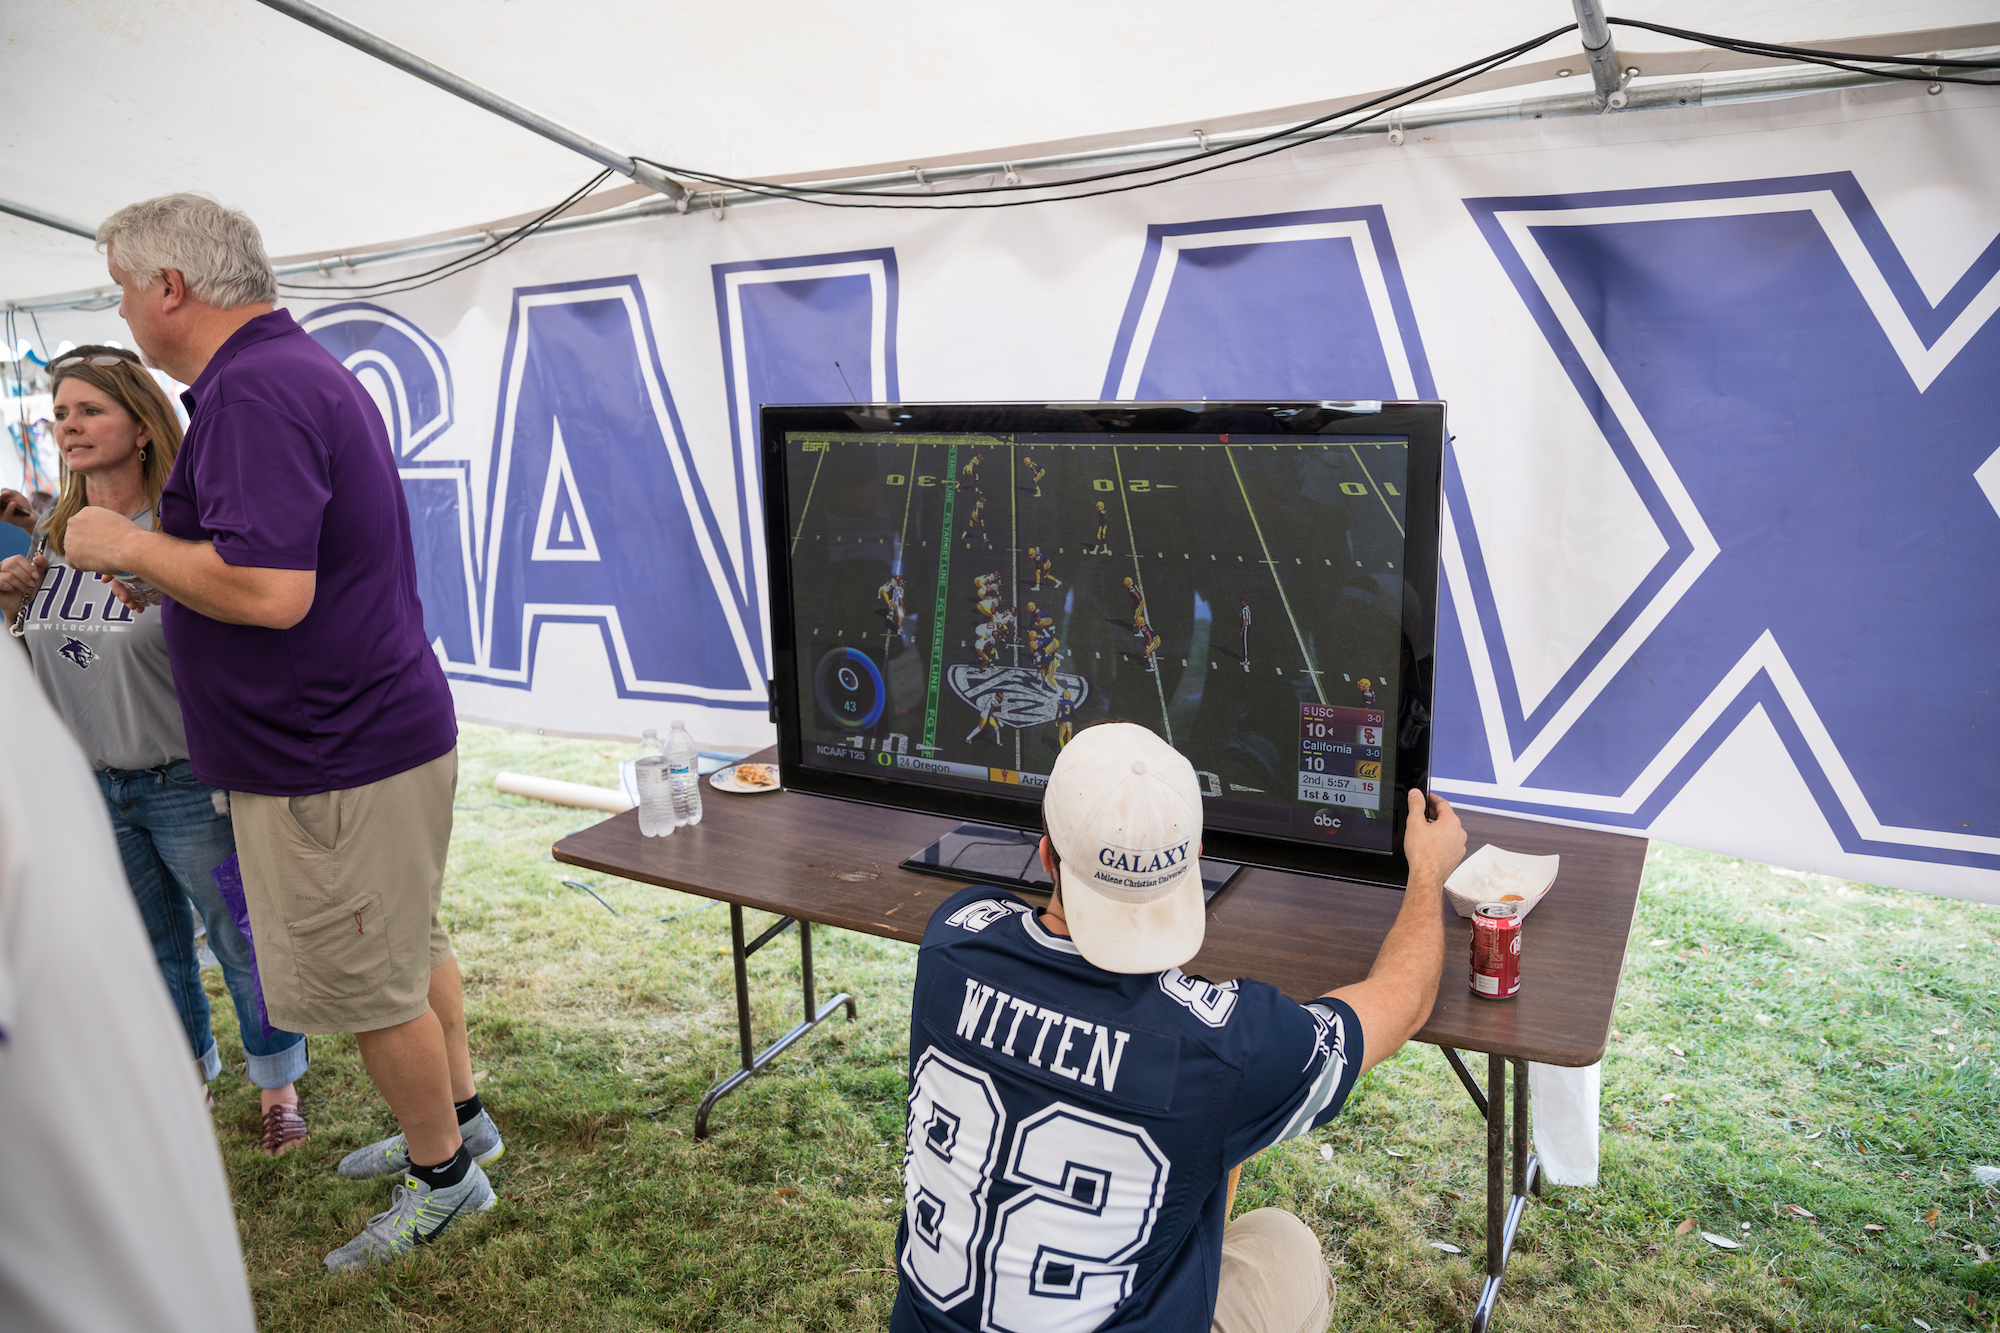 Galaxy members set up a big screen to monitor the action during their tailgate.